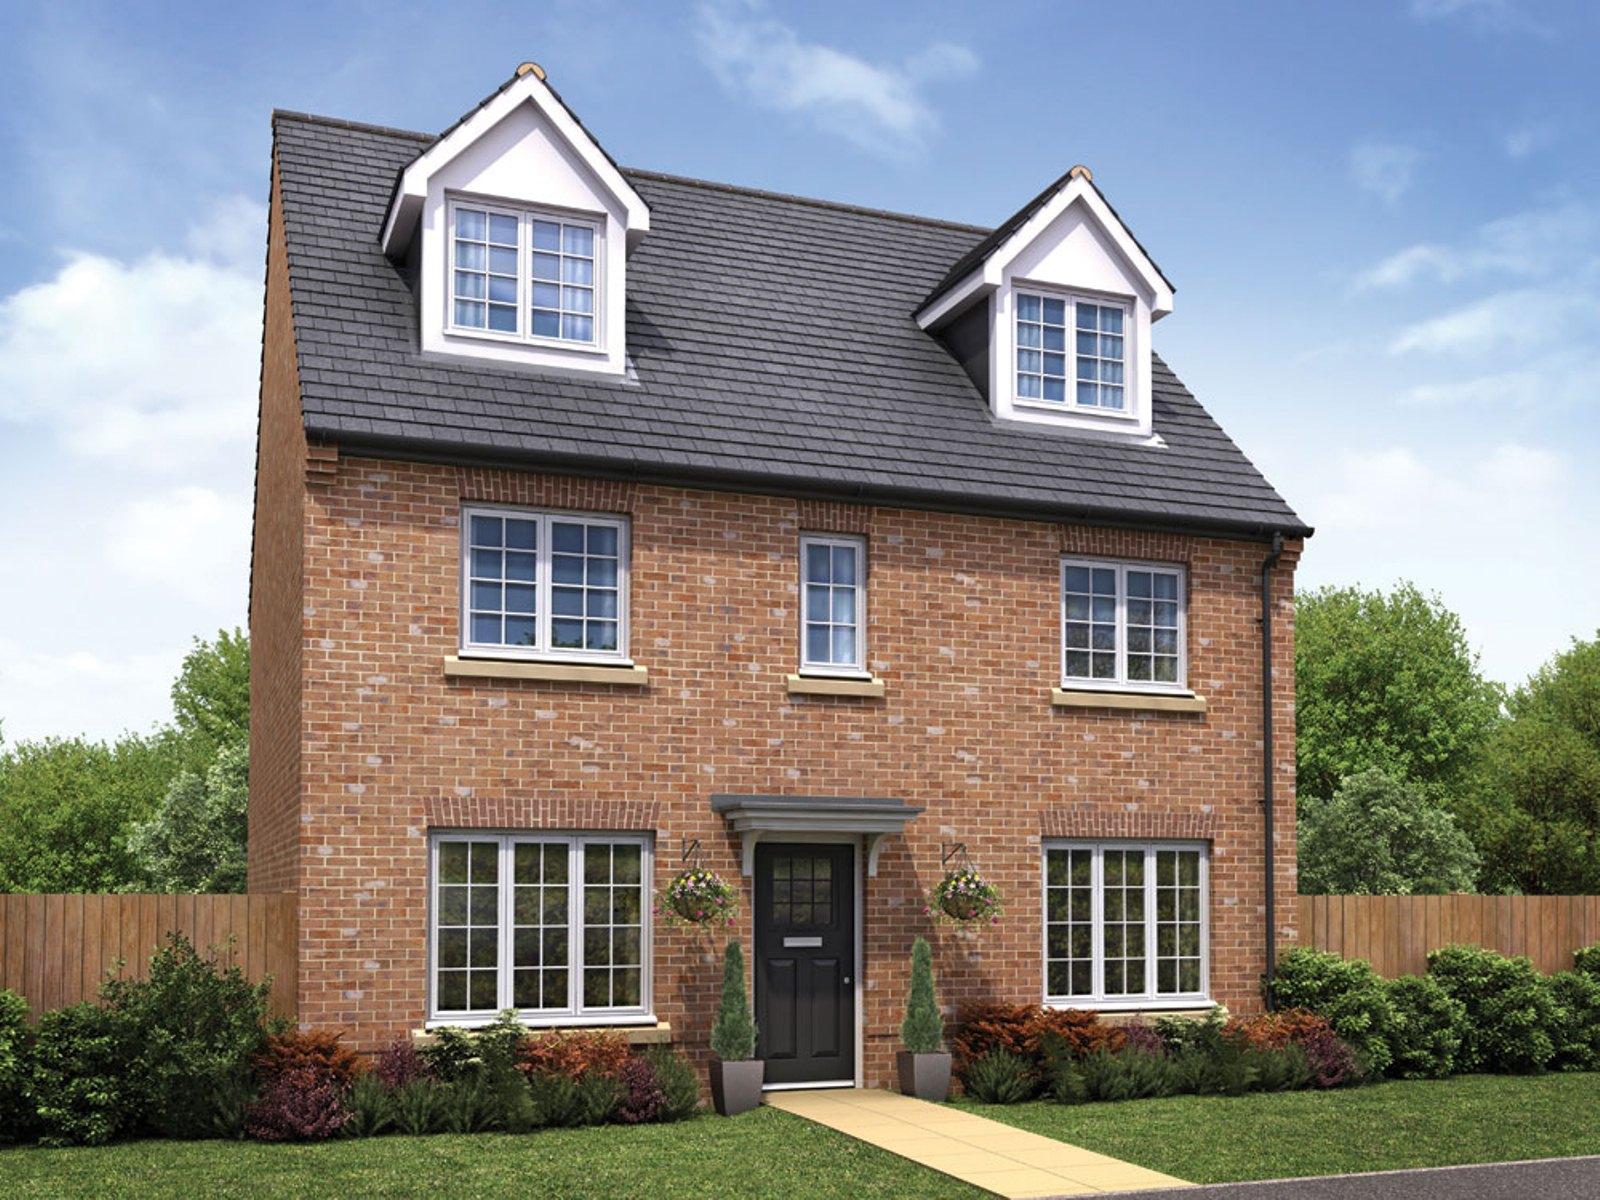 Taylor Wimpey - Pipers Green - Exterior - The Wilton - 5 bed new home